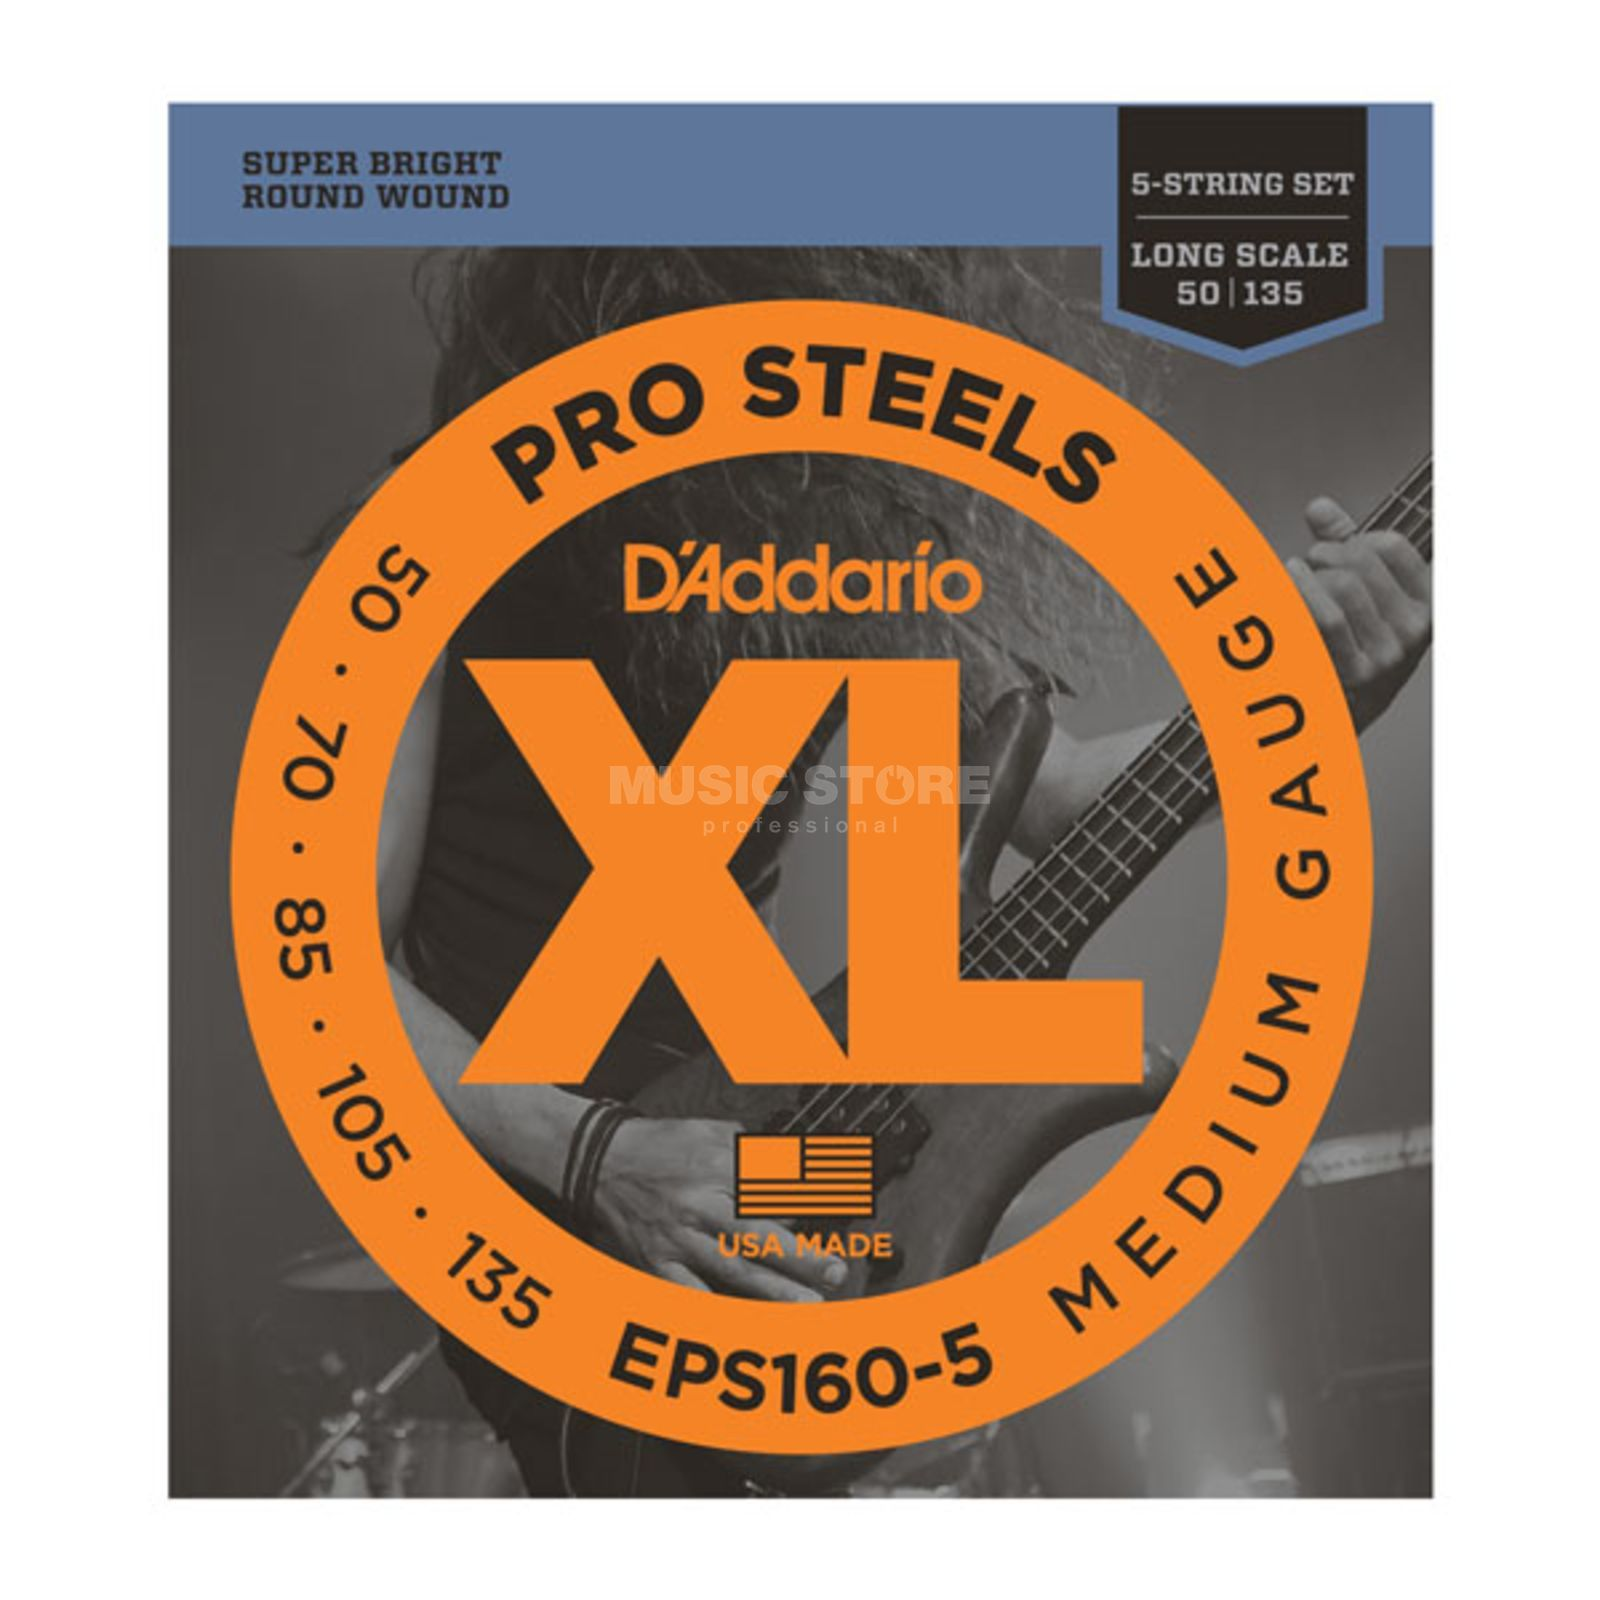 D'Addario Bass Strings Pro Steels 50-135 50-70-85-105-135, EPS160-5 Изображение товара